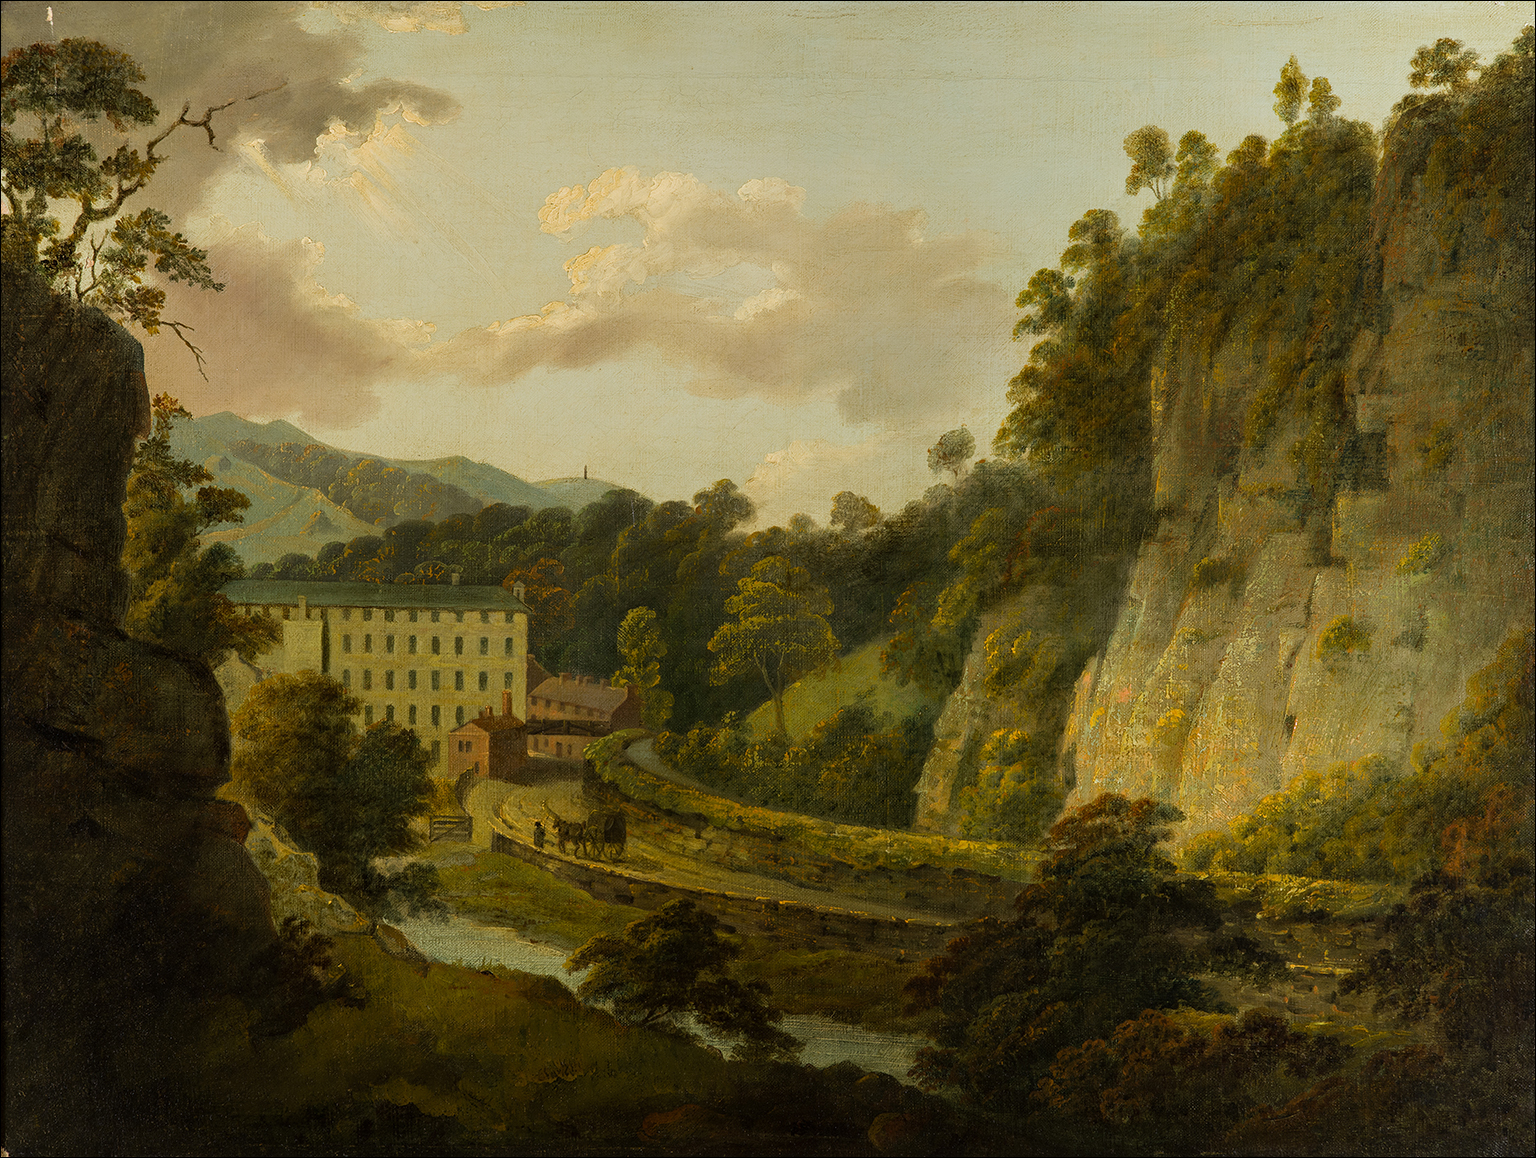 Arkwright's Cotton Mills, by Day and Willersley Castle, by Day